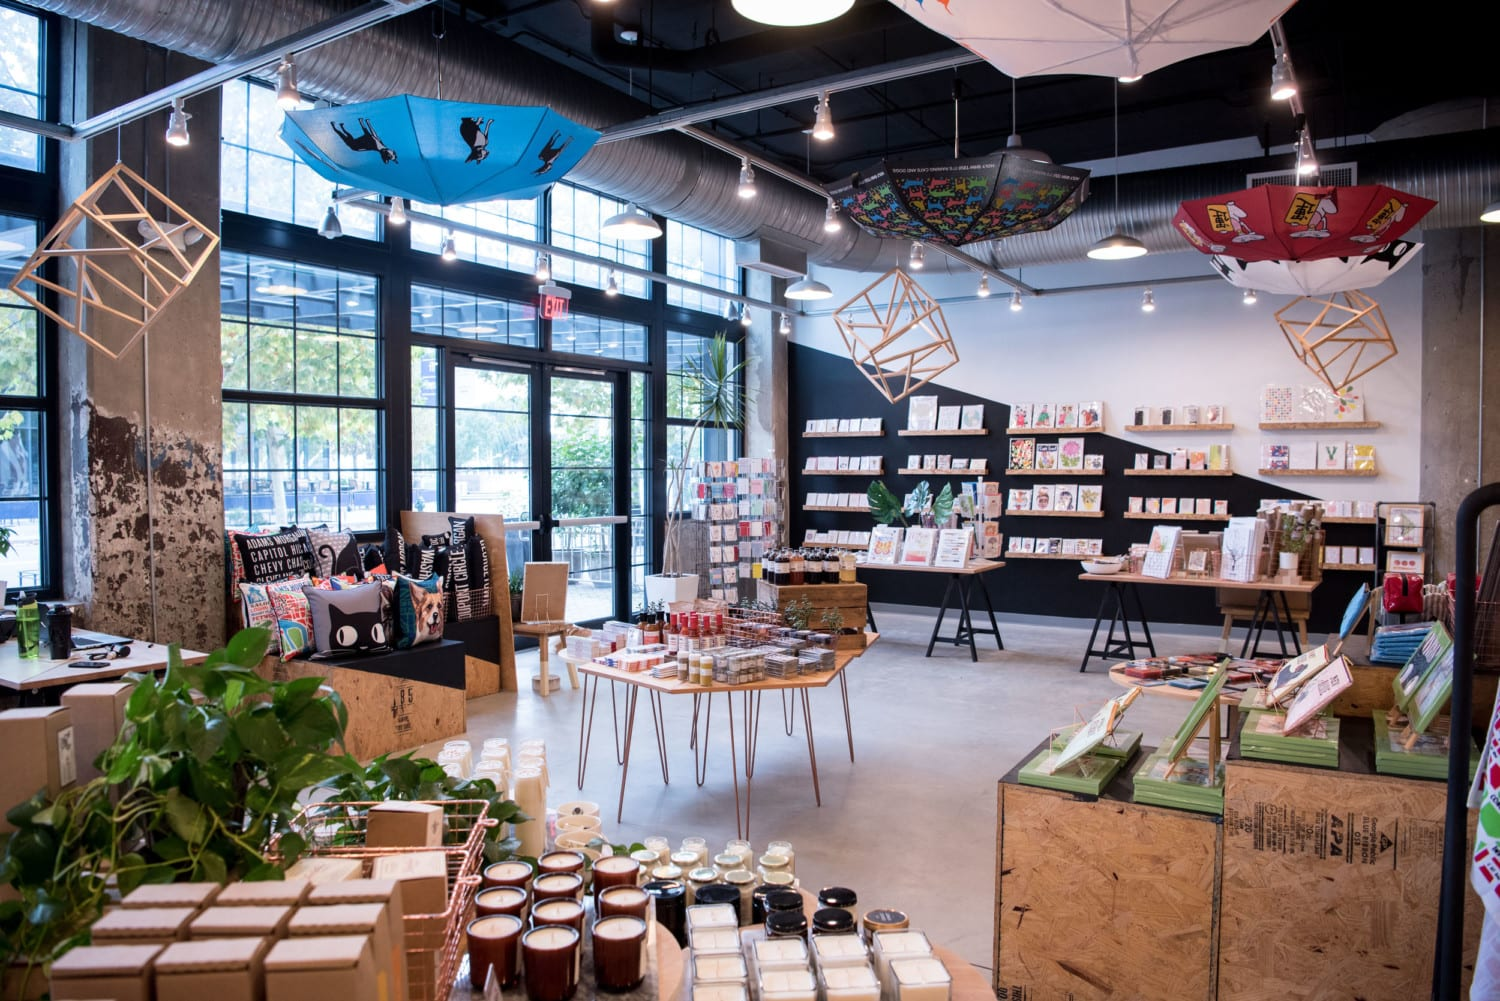 Modern Interior of Steadfast Supply store with wood accents and plants